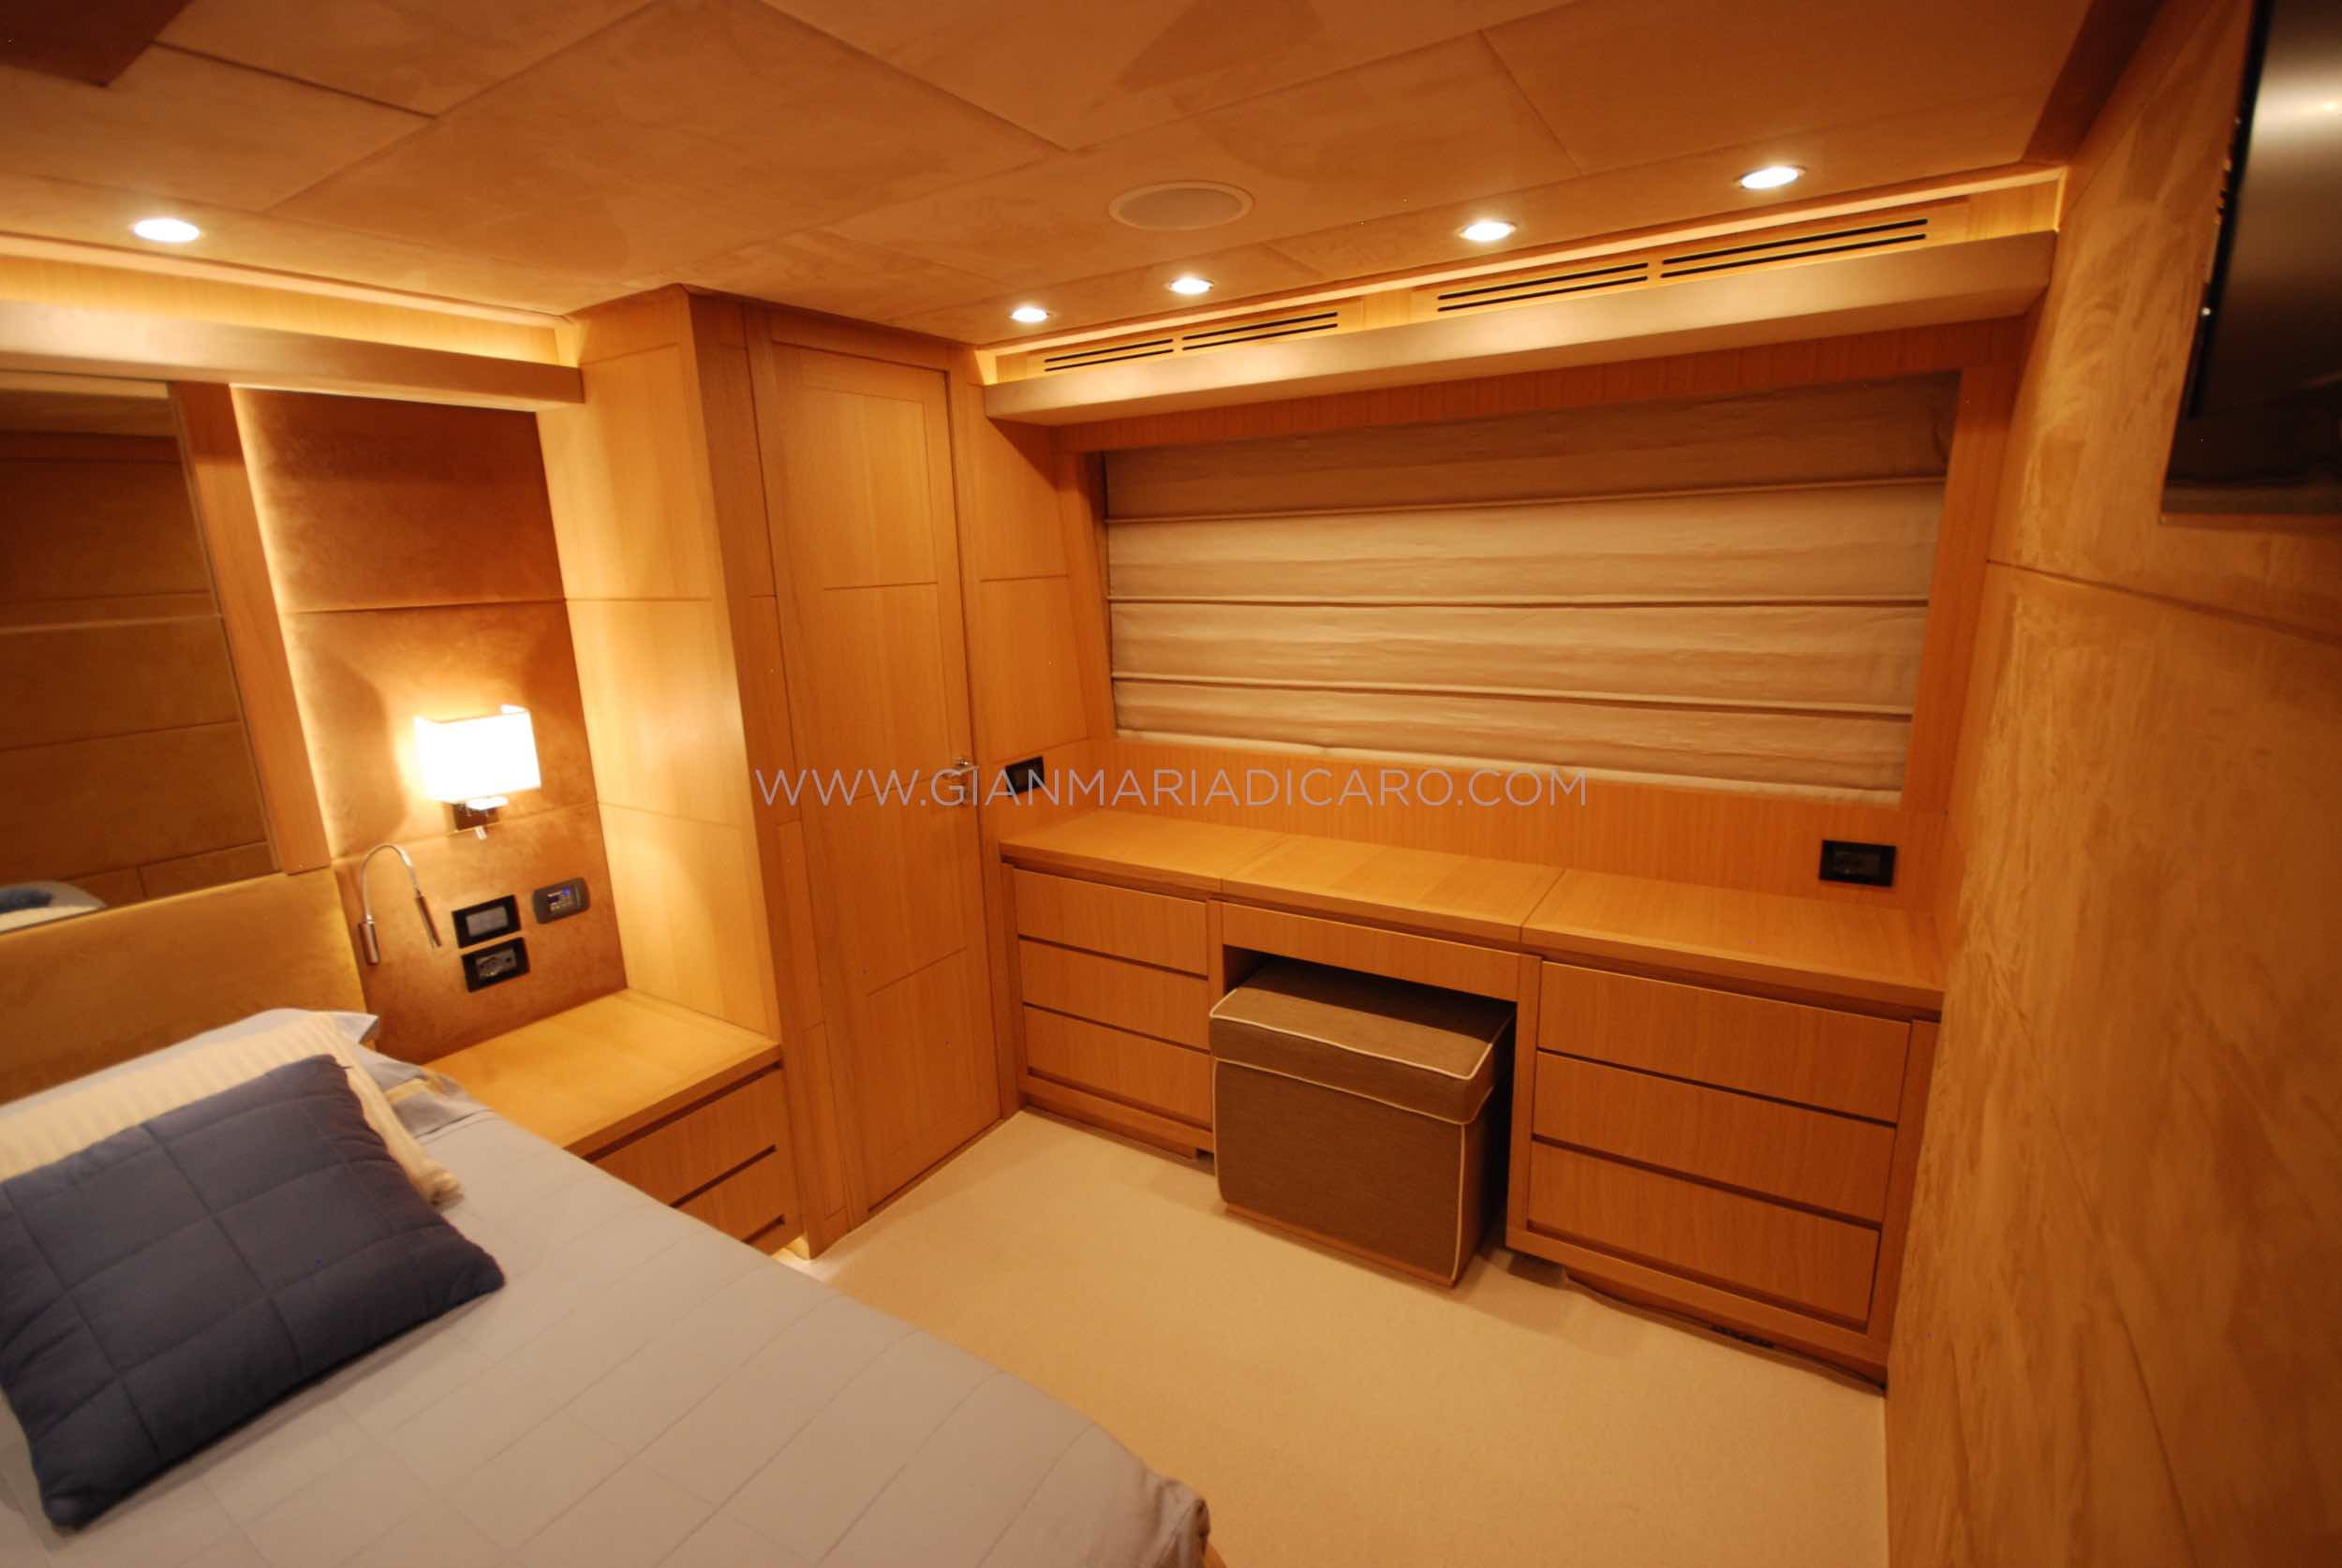 emys-yacht-22-unica-for-sale-222.jpg